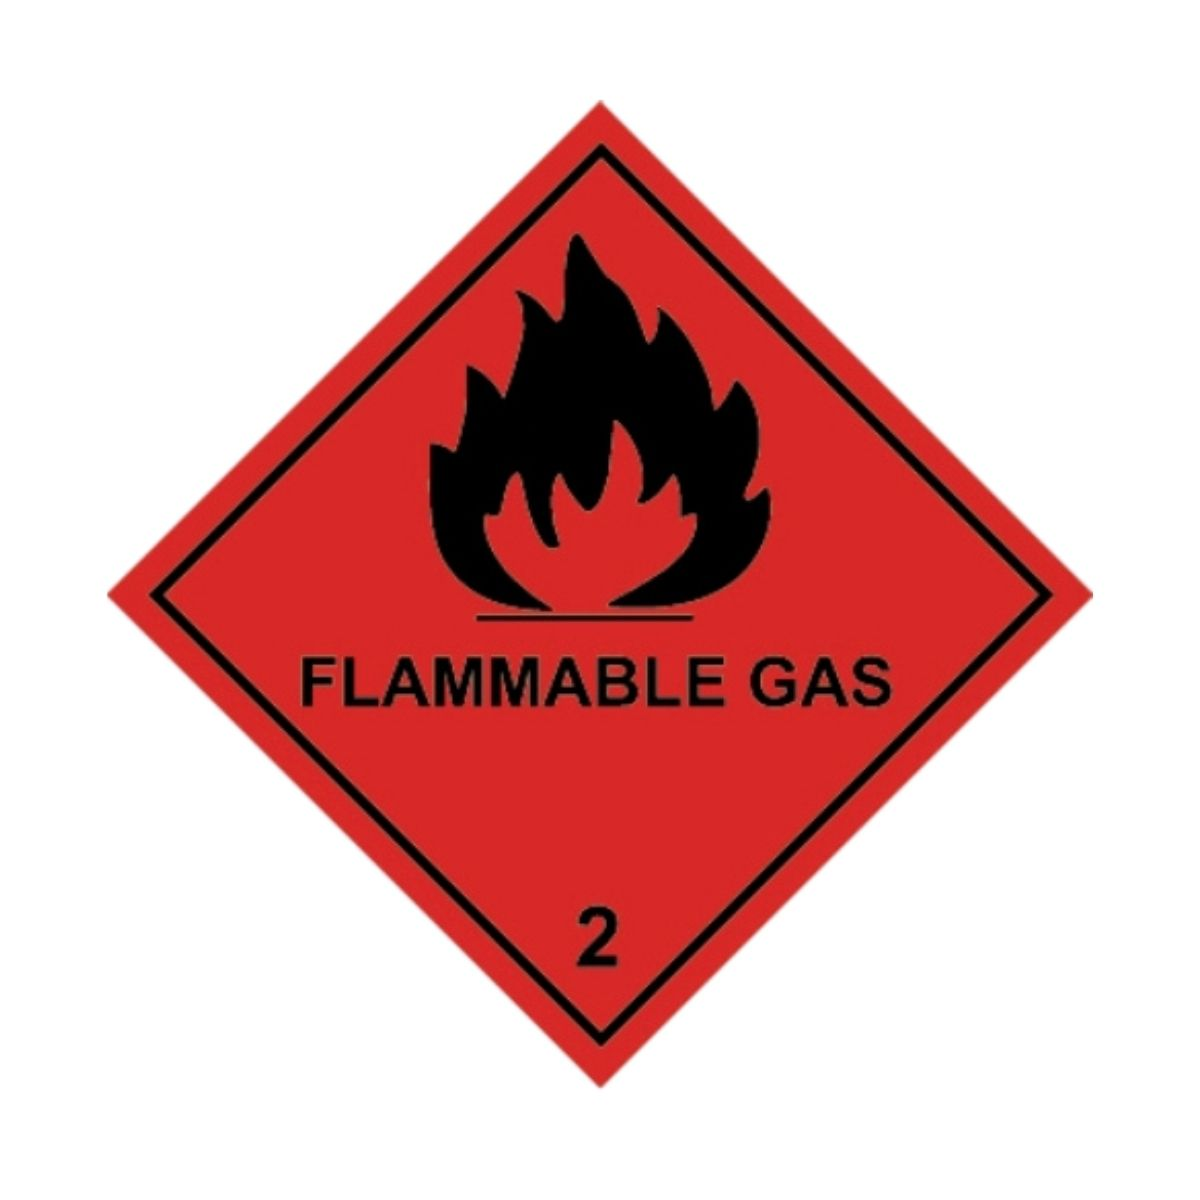 HD1230 UN Hazard Warning Diamond Class 2 Flammable Gas